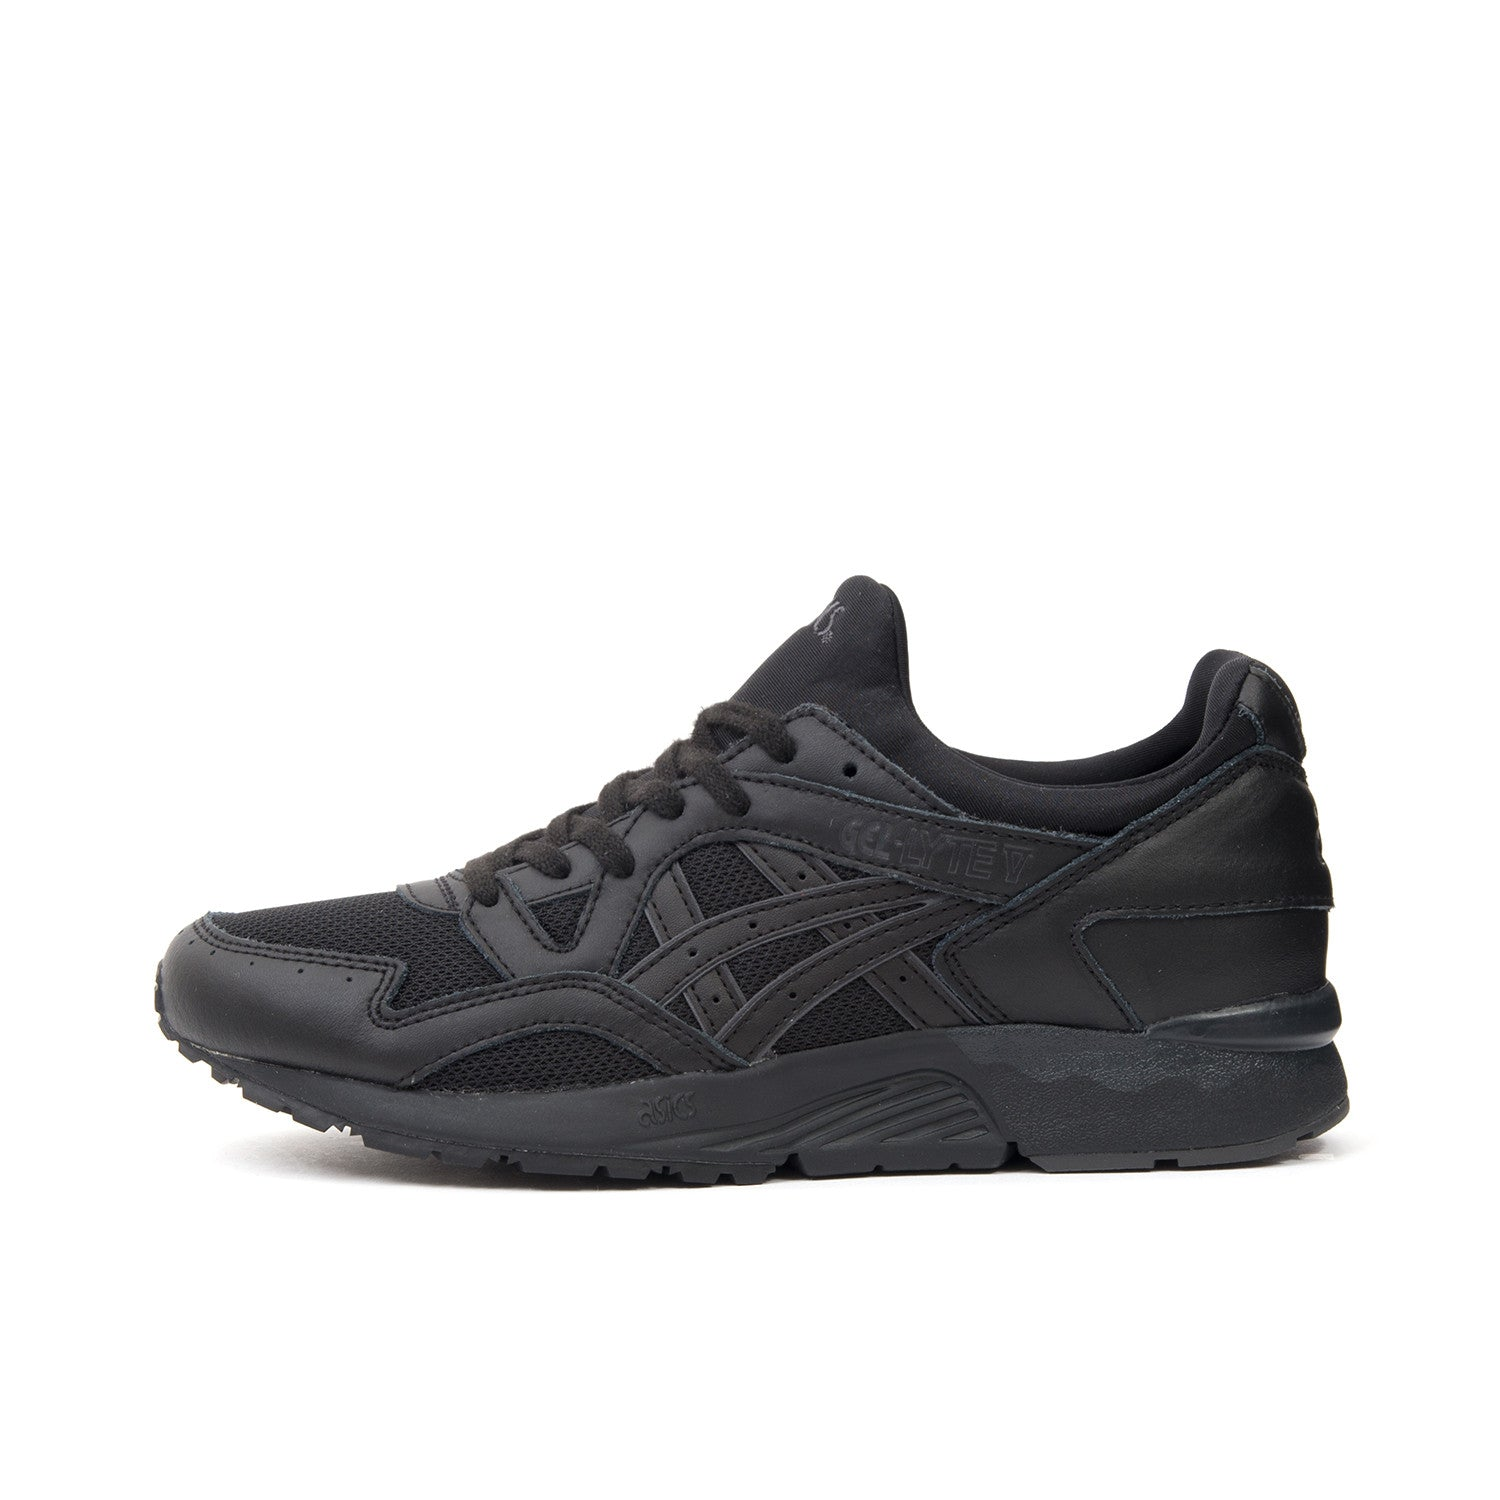 check out 9d6ec 990e2 Asics Gel-Lyte V Black - H7N2L-9090 – Concrete